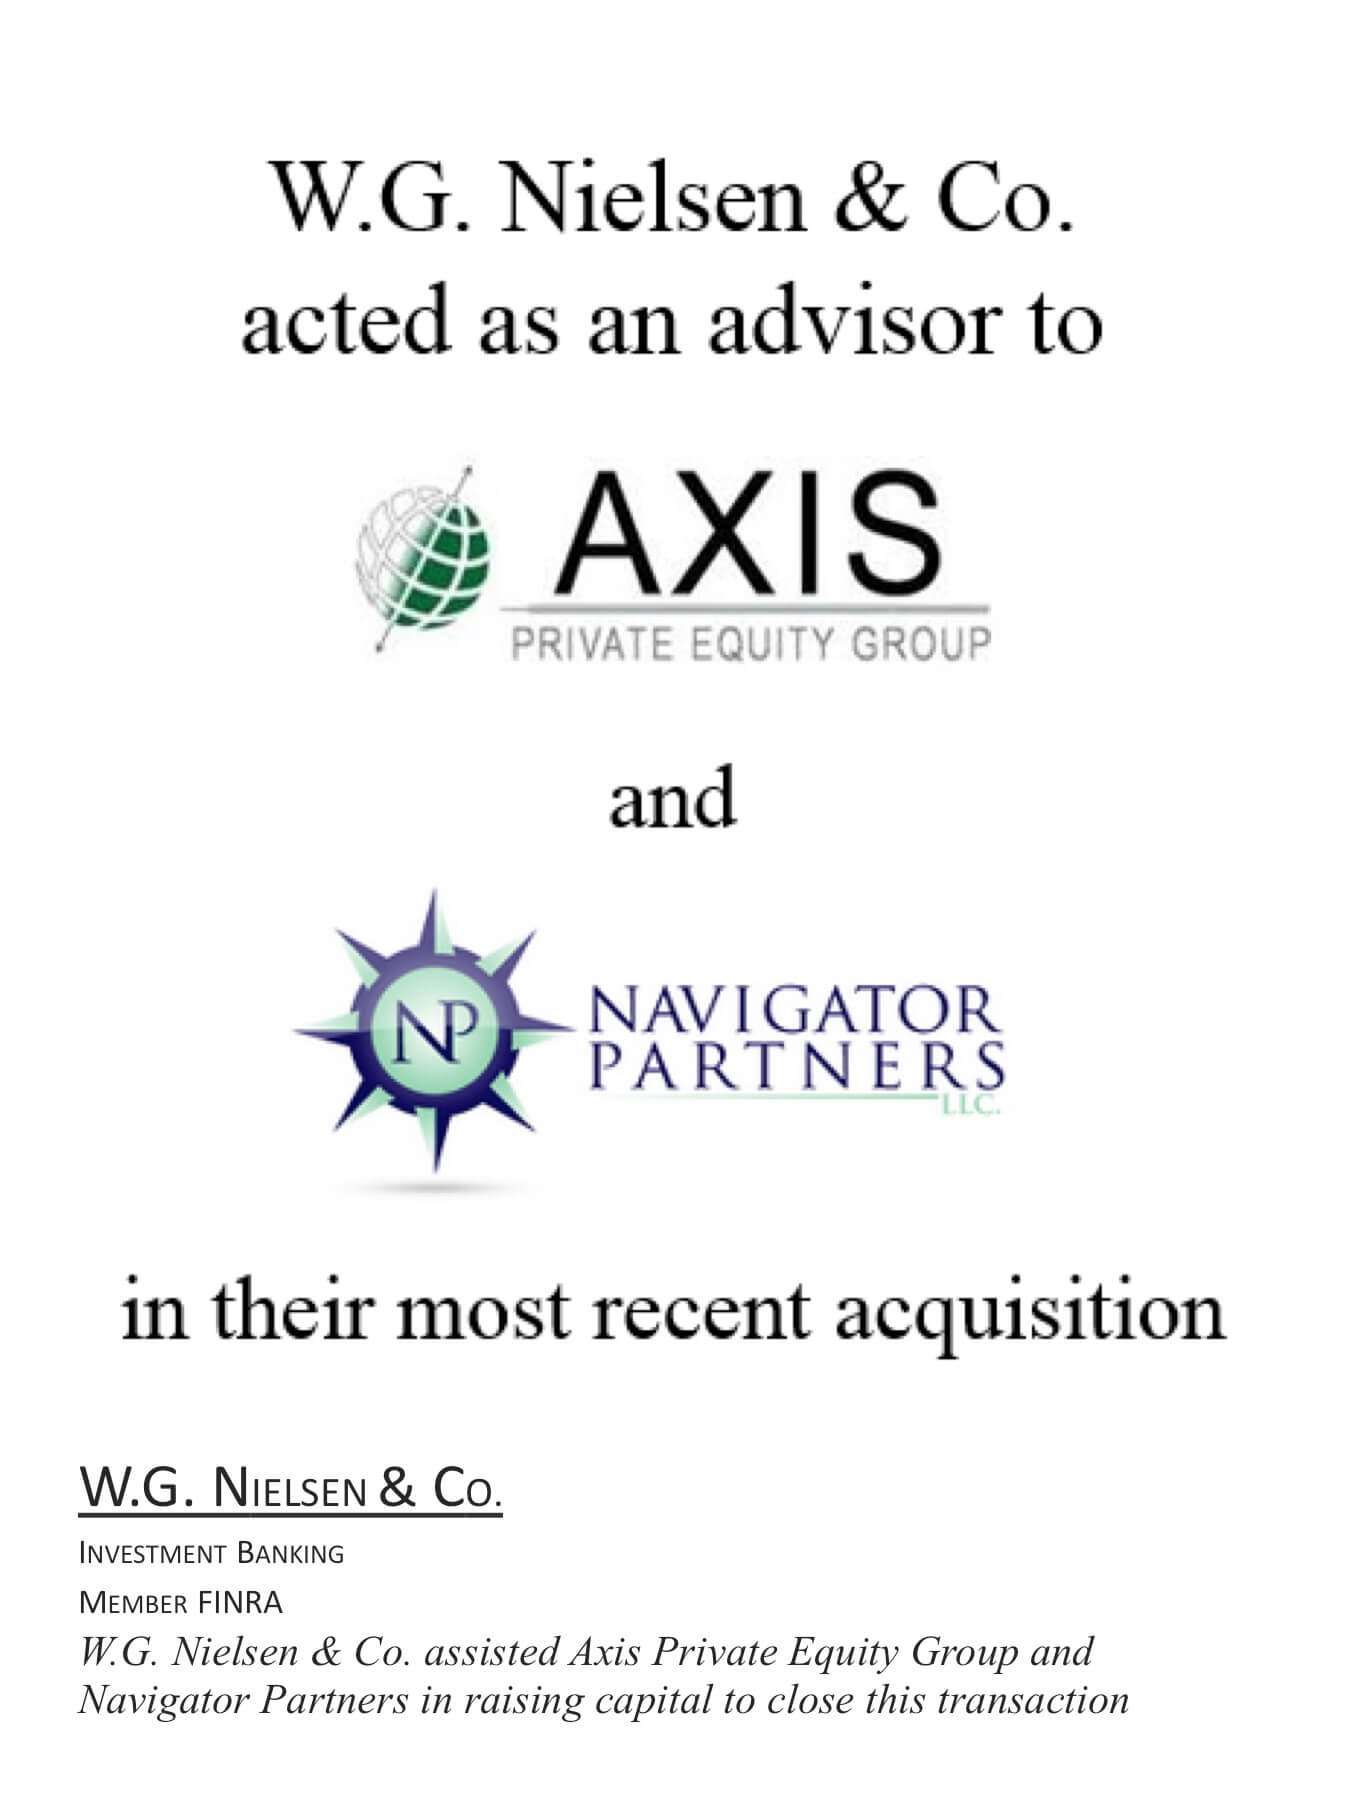 axis investment banking transaction